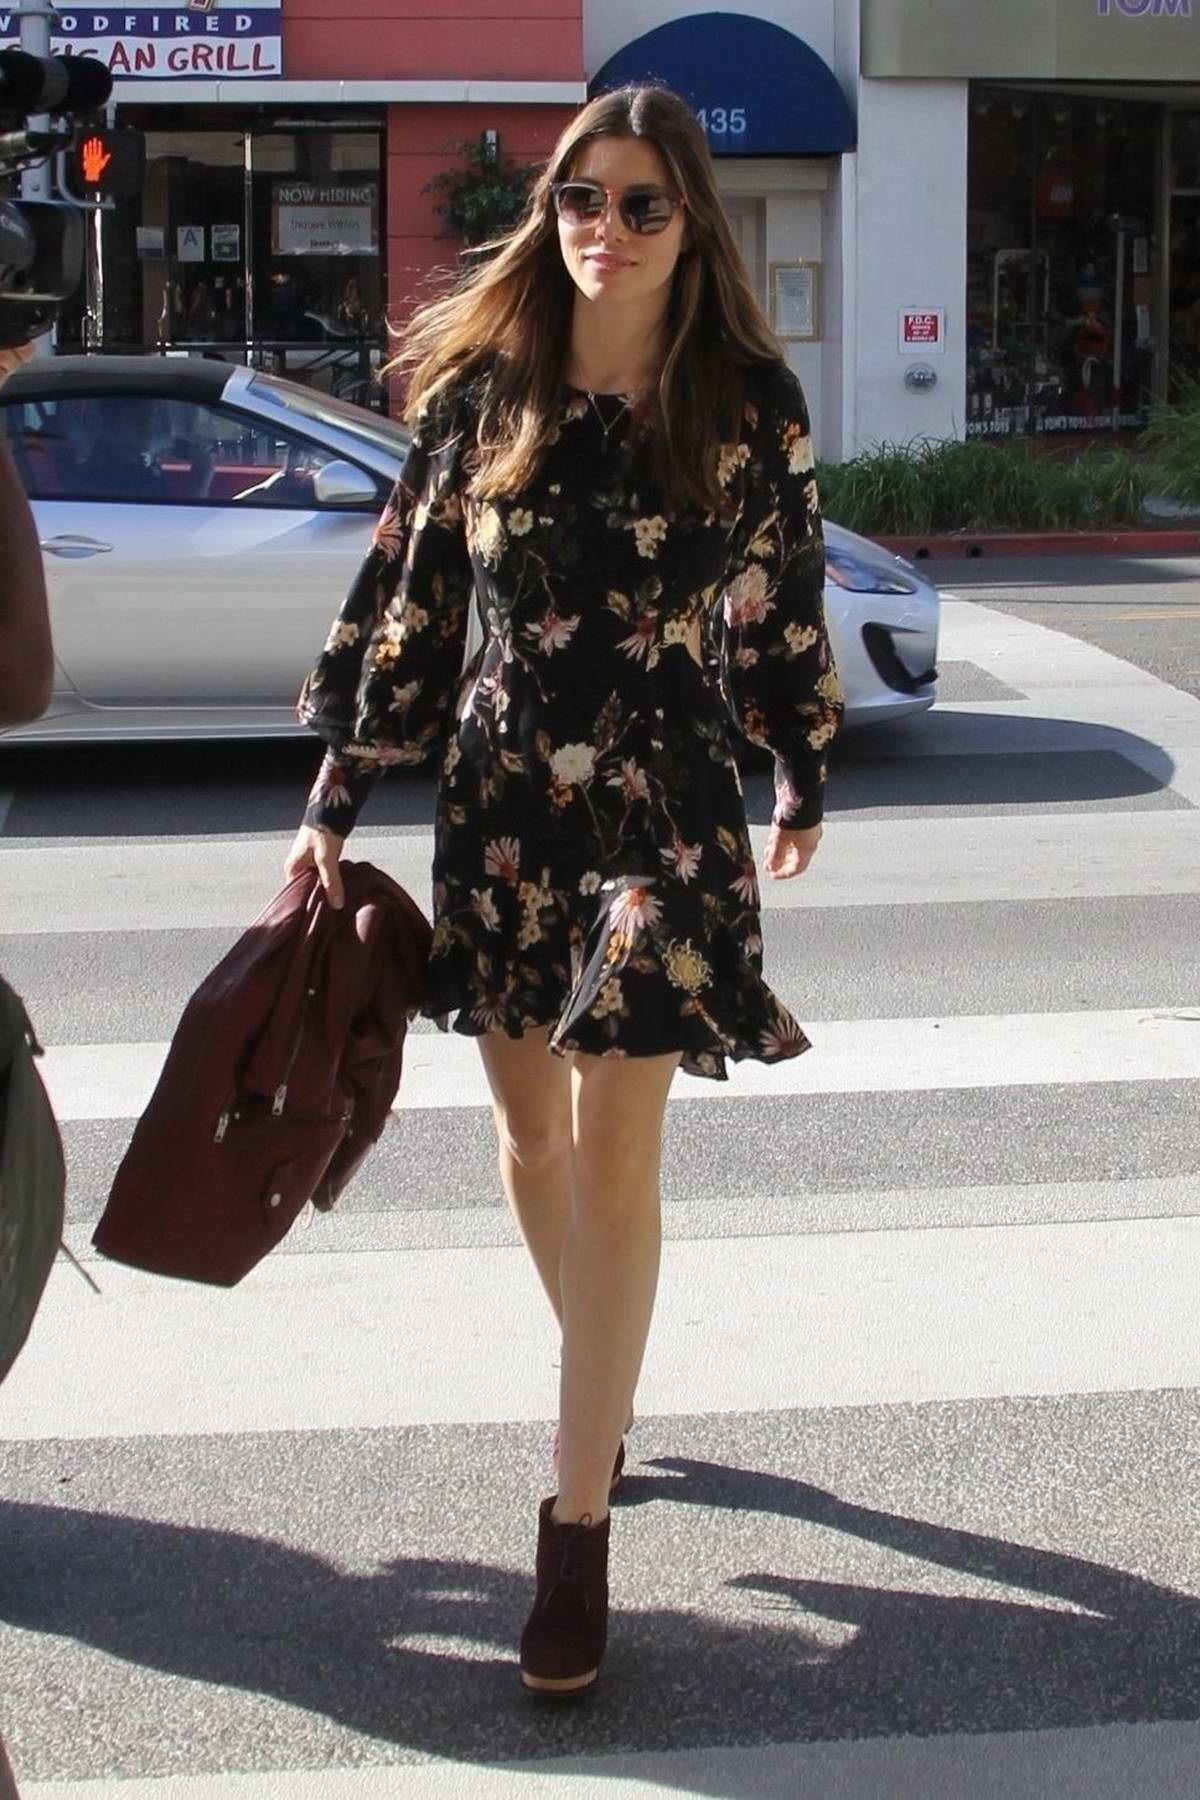 Jessica Biel steps out in a cute floral dress with a red biker jacket in Beverly Hills, Los Angeles